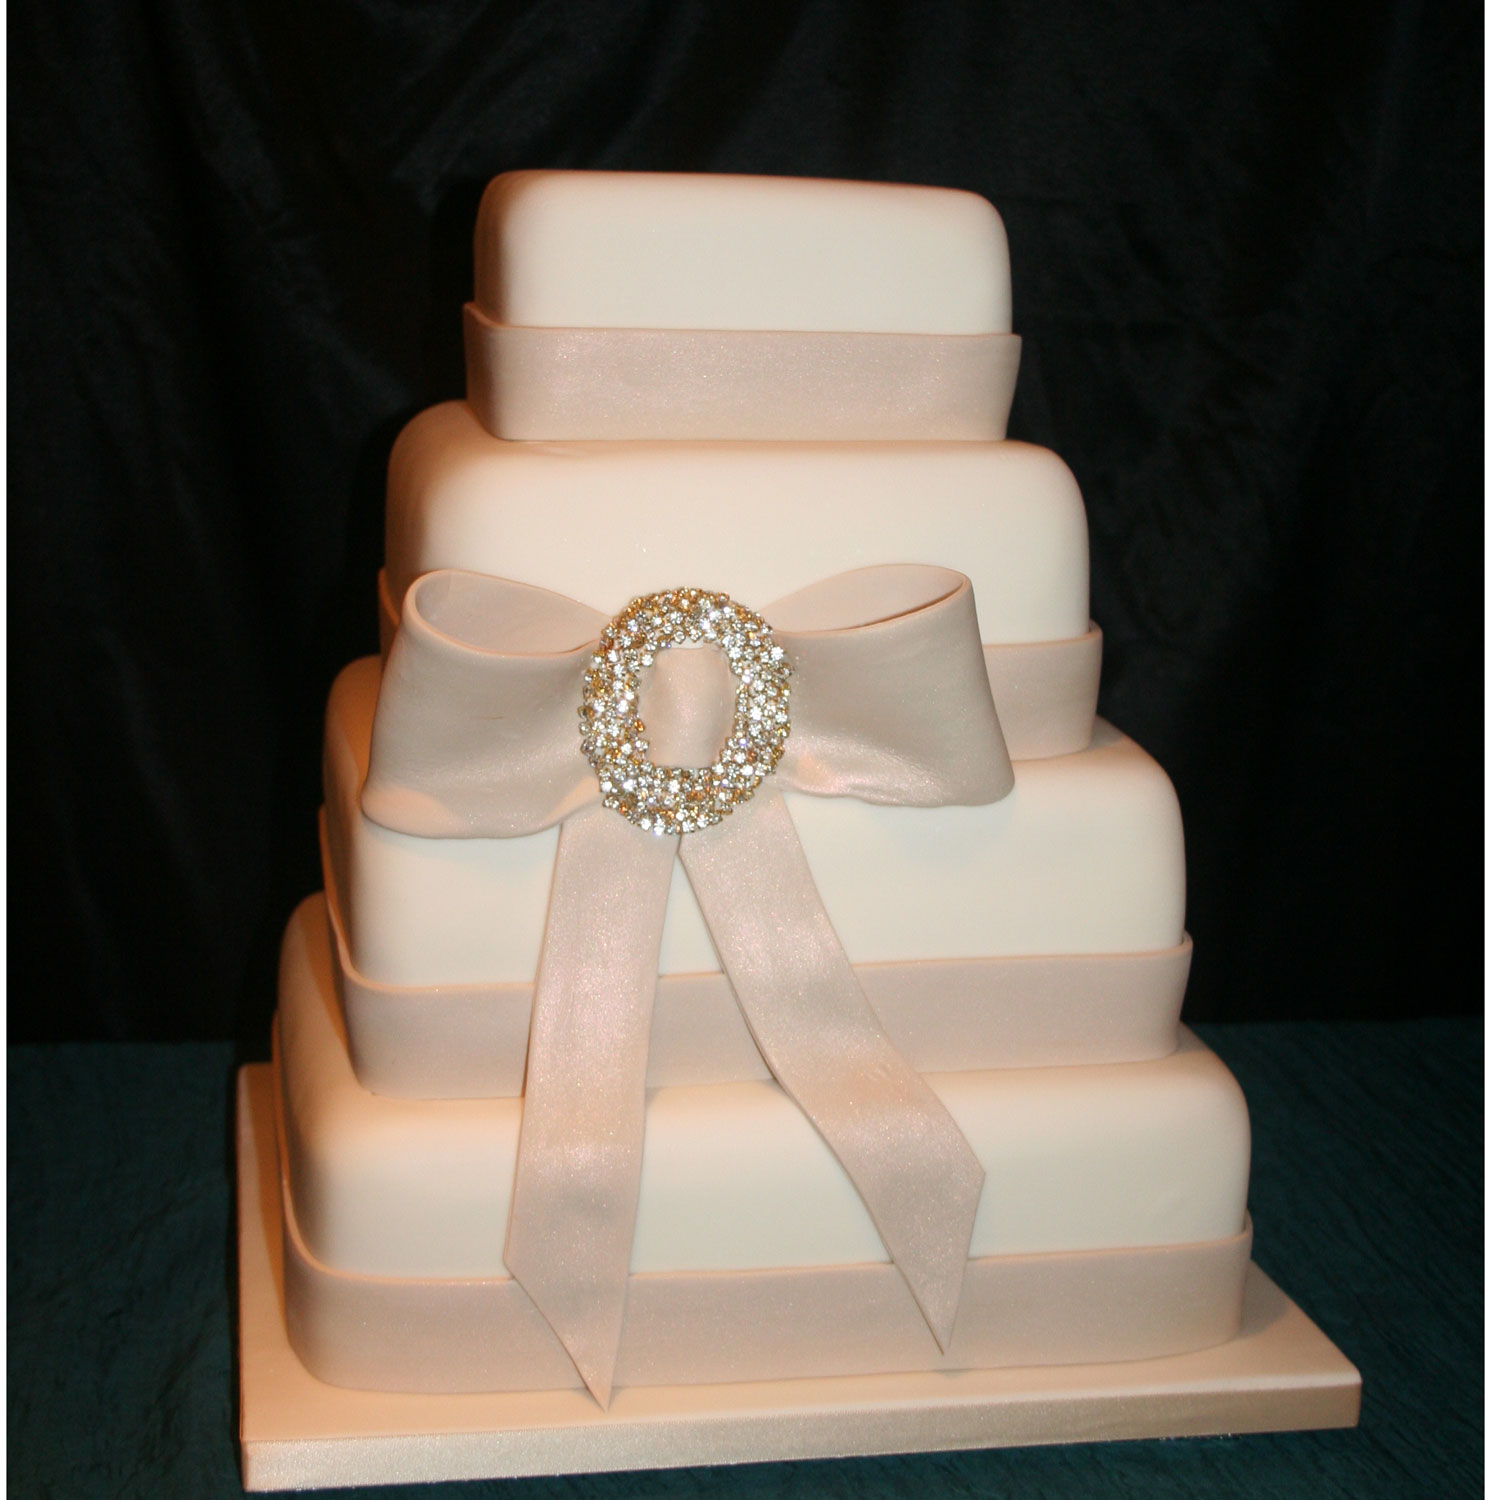 Satin Finish Wedding Cake